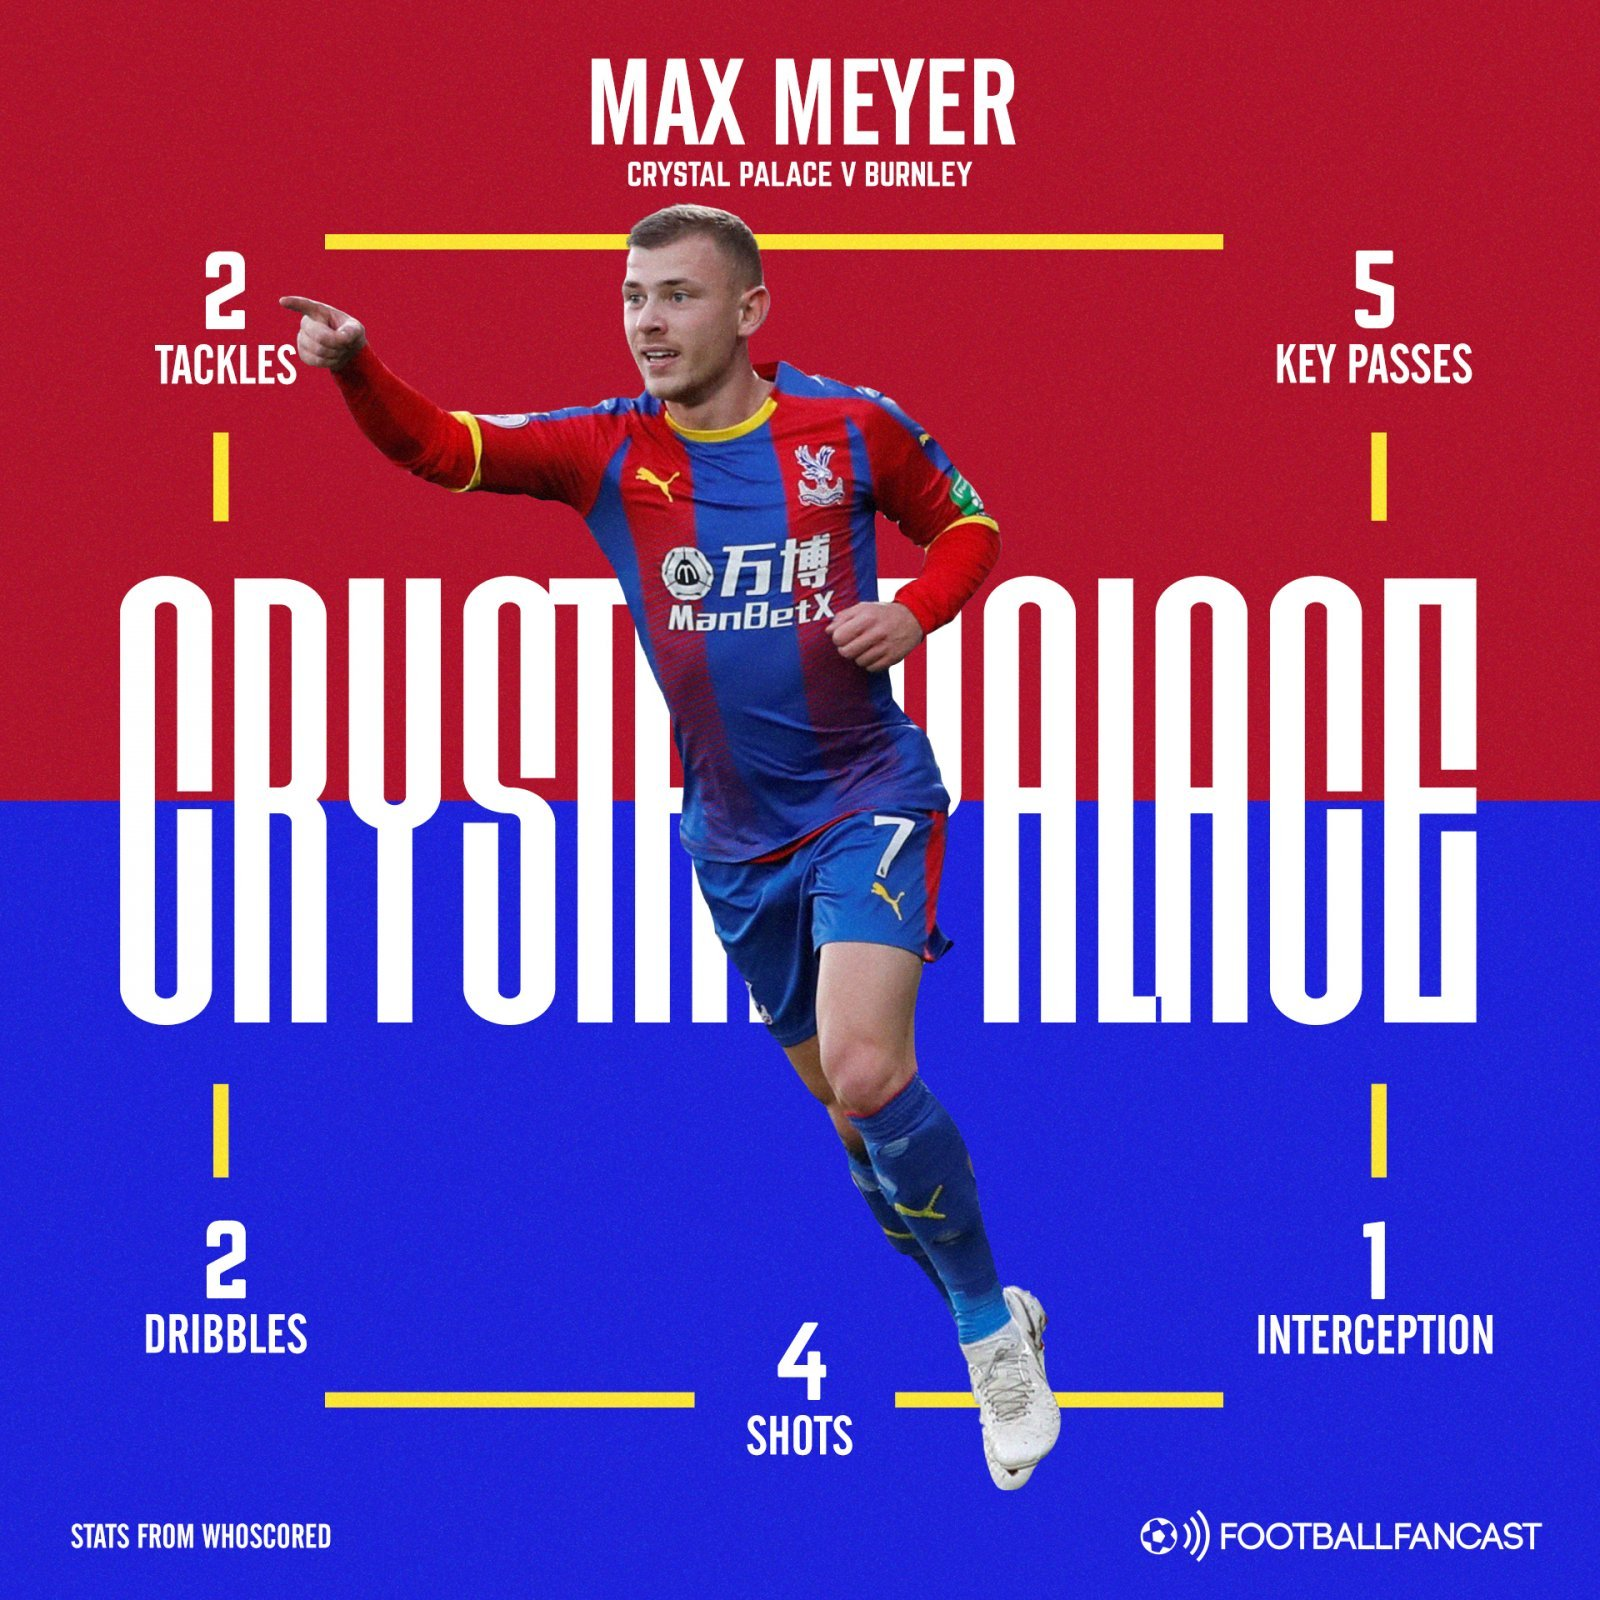 Max Meyer's performance in numbers versus Burnley